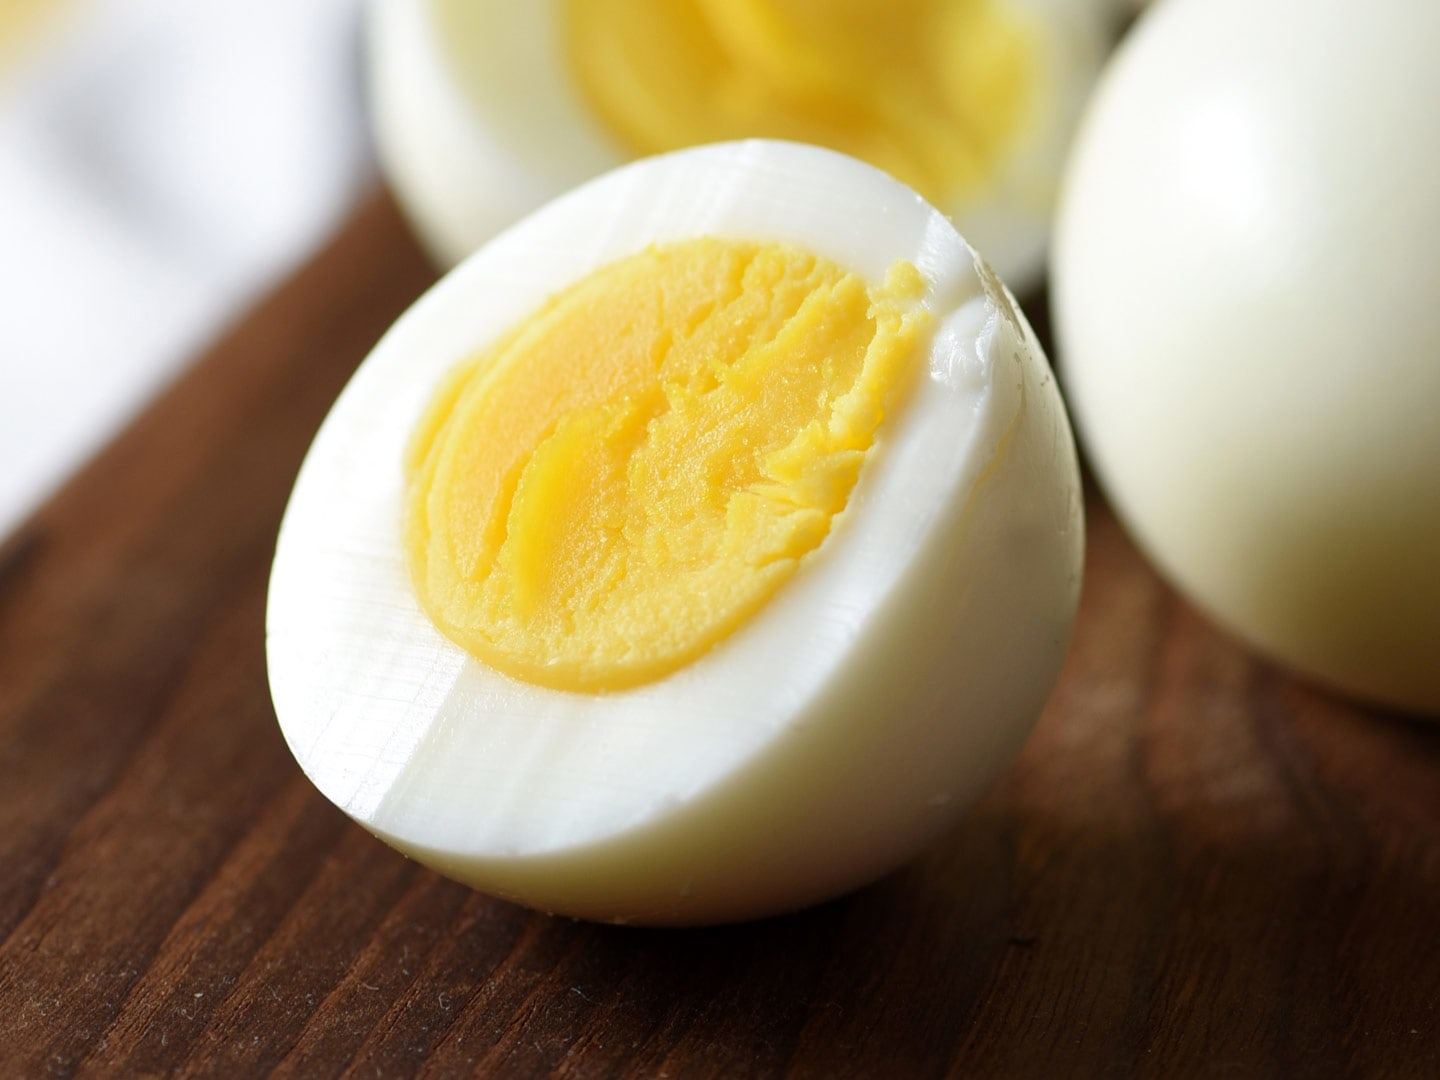 How long do you boil eggs for coloring